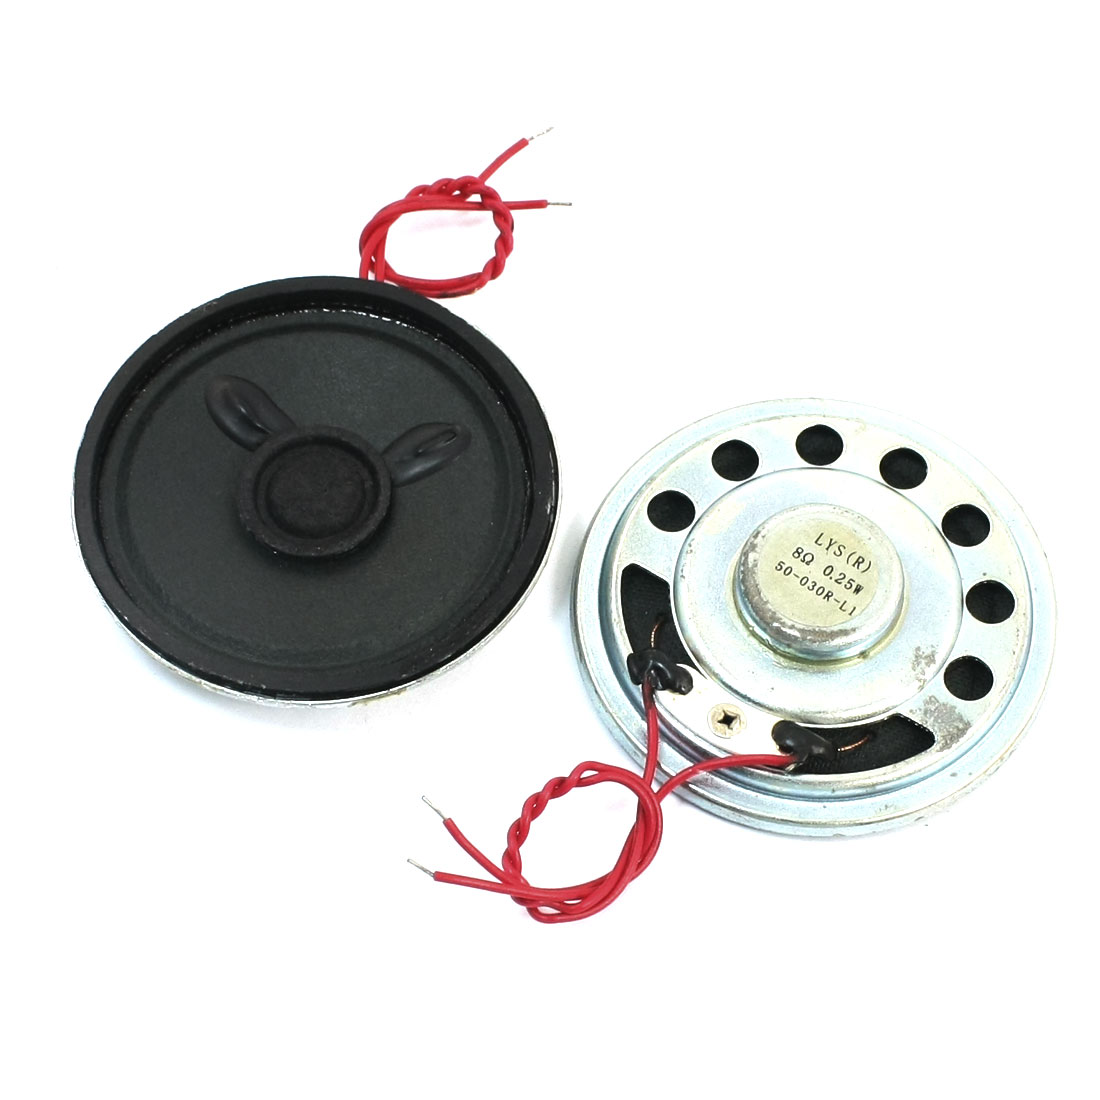 Music Player 50mm Dia Round Magnet Sealed Round Metal Mini Speaker Loudspeaker 8 Ohm 0.25W 2Pcs